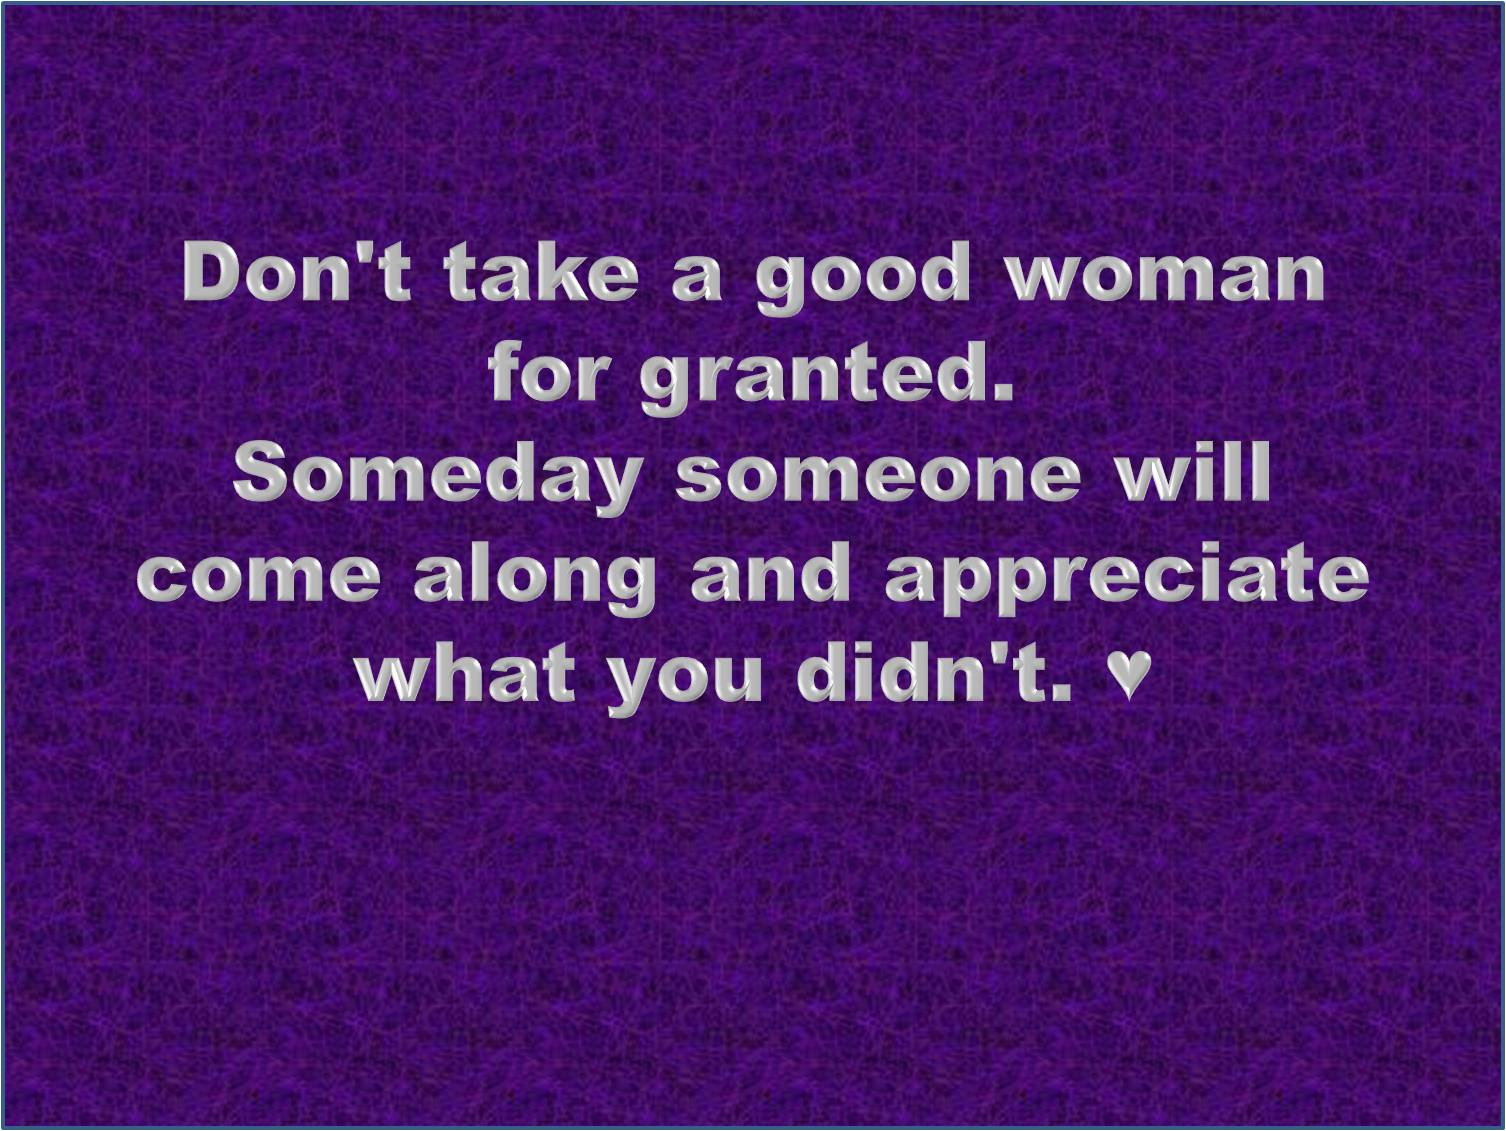 Good Quotes My Coolest Quotes Coolest Quotes  Don't Take A Good Woman For